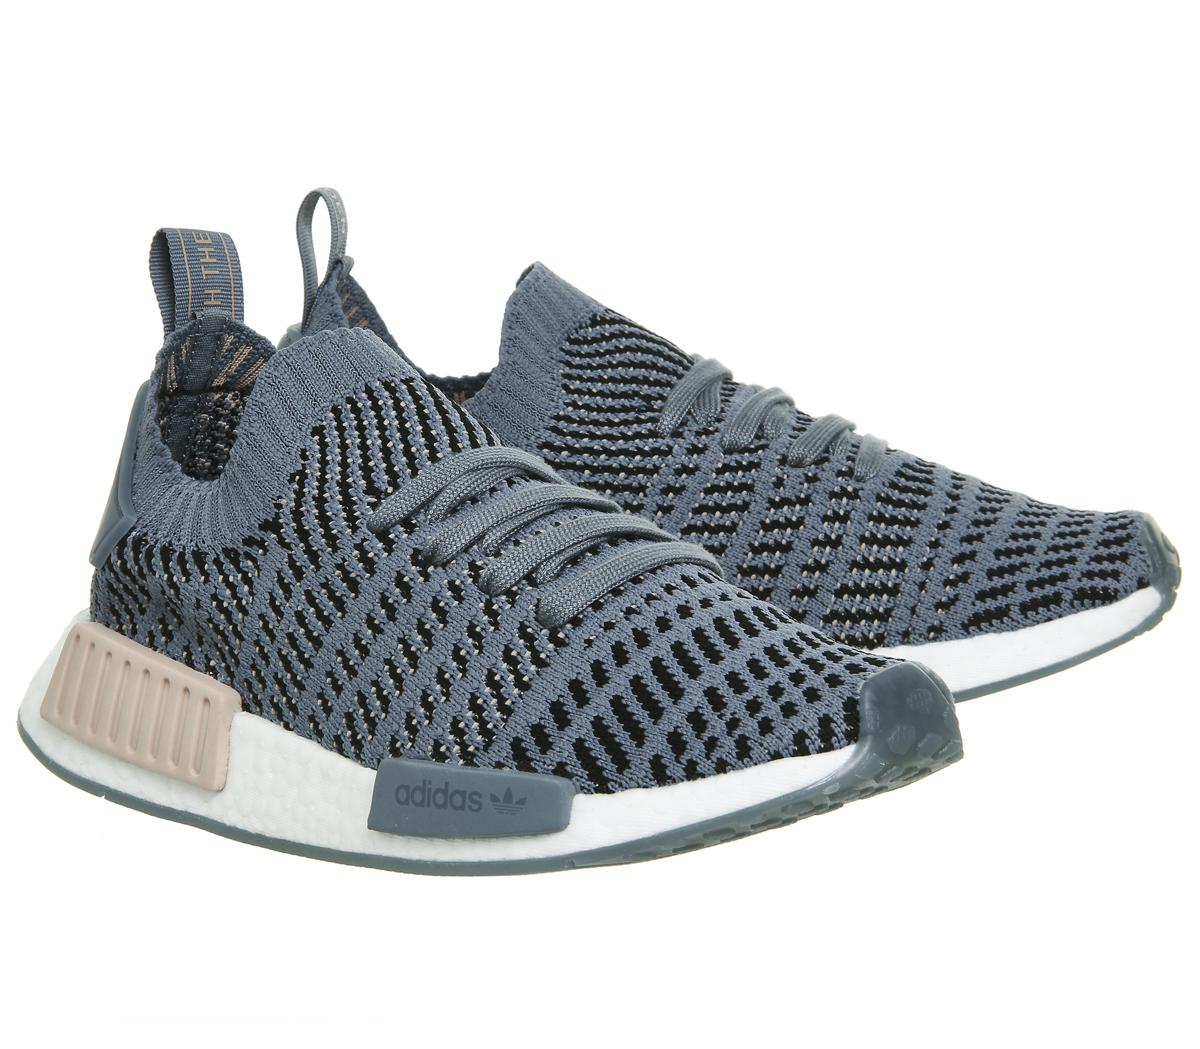 reputable site 42faa 223a5 Lyst - Adidas Nmd R1 Prime Knit Trainers